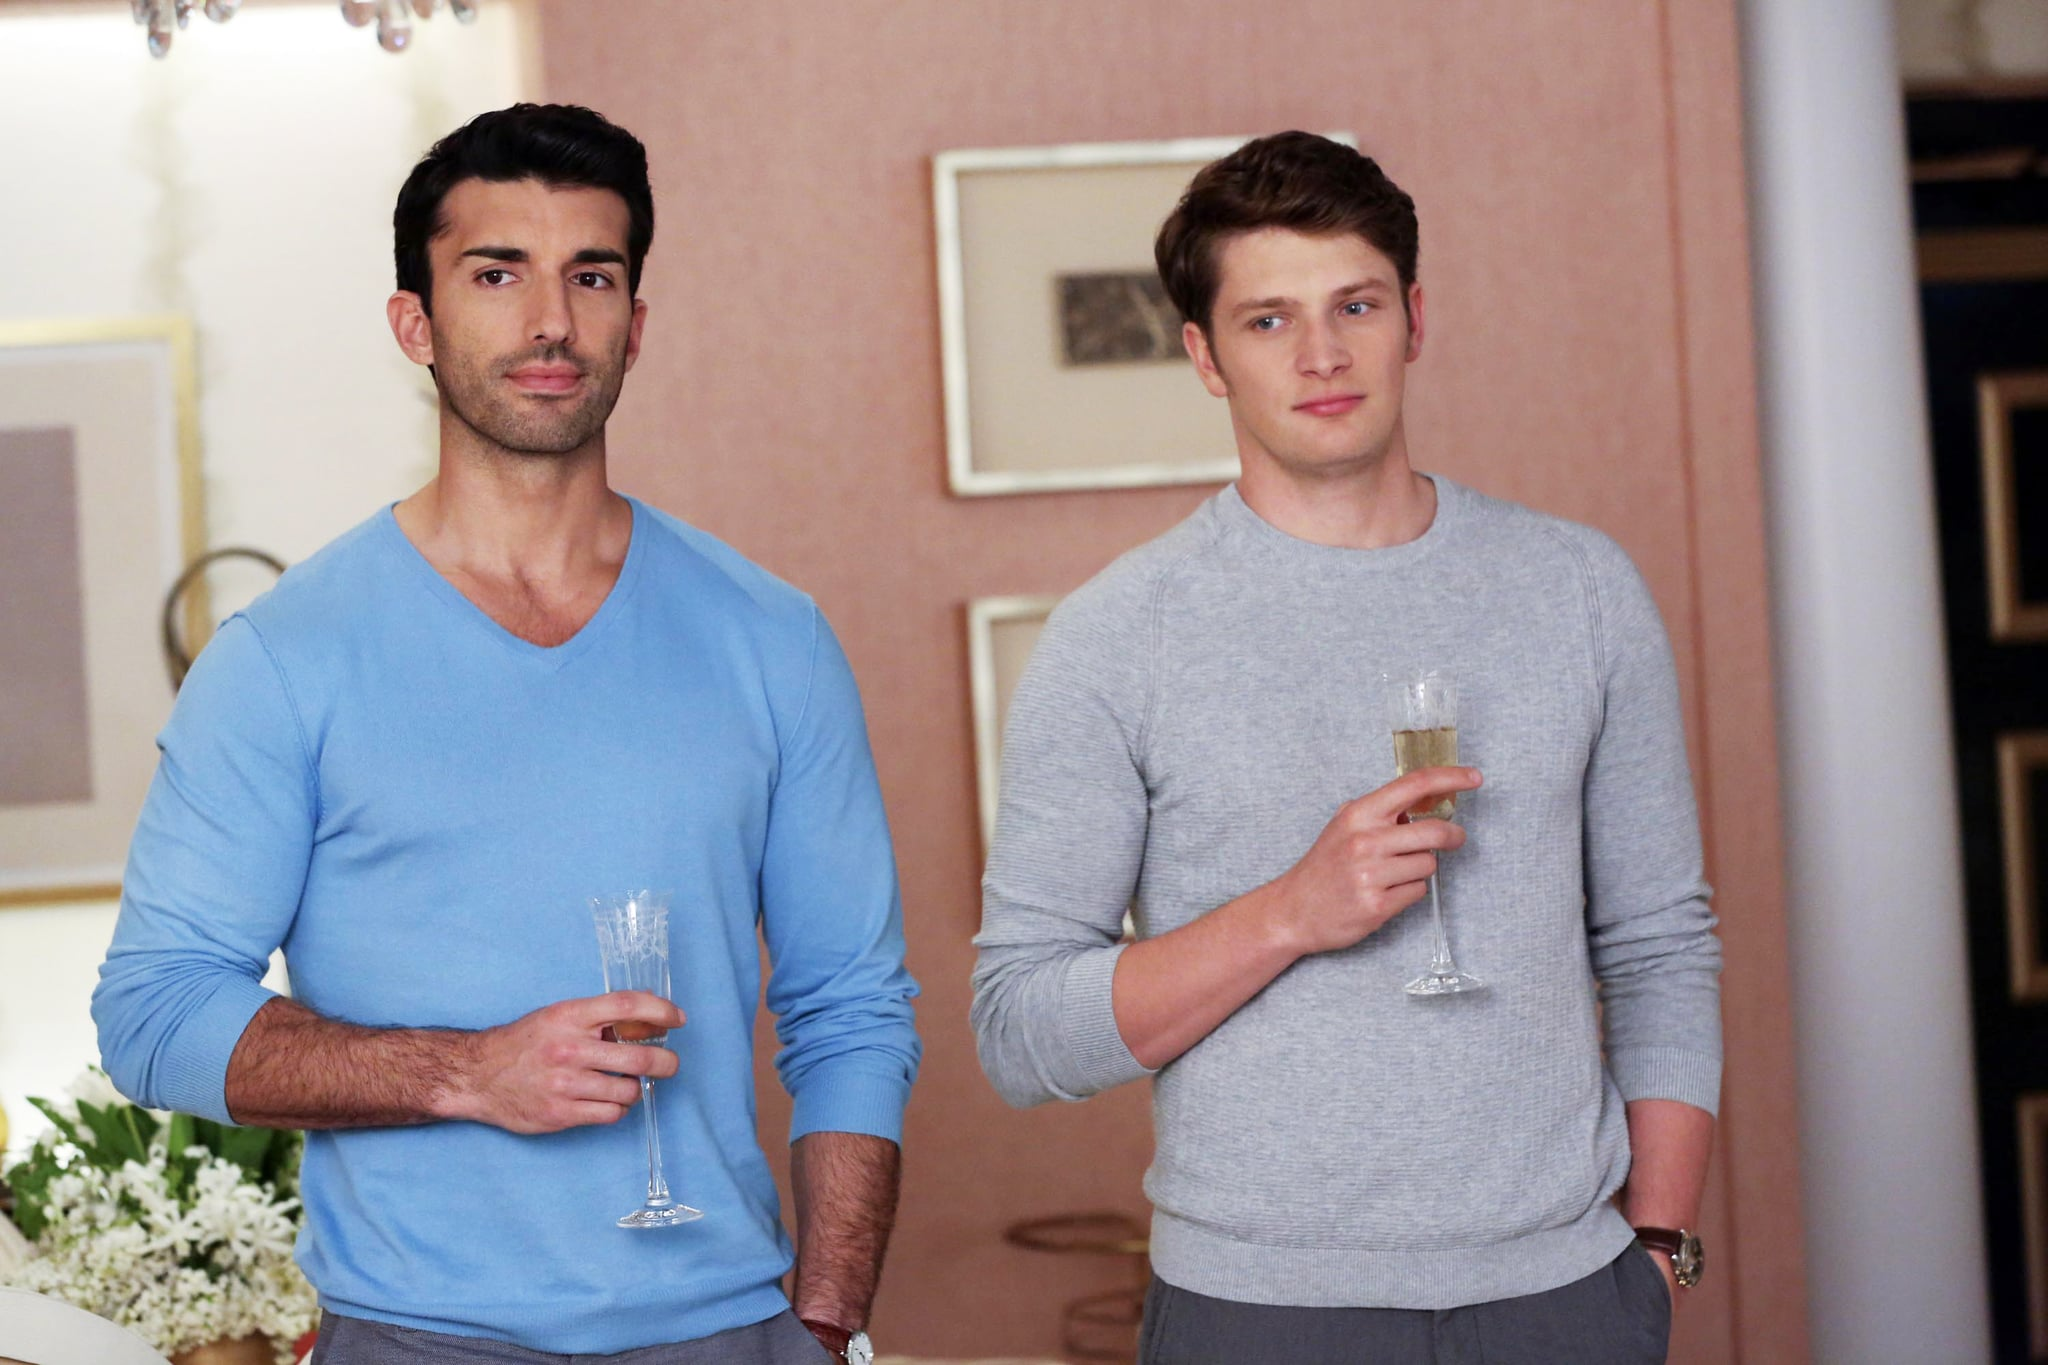 JANE THE VIRGIN, l-r: Justin Baldoni, Brett Dier in 'Chapter Forty-Two' (Season 2, Episode 20, aired May 2, 2016). ph: Michael Yarish/The CW/courtesy Everett Collection